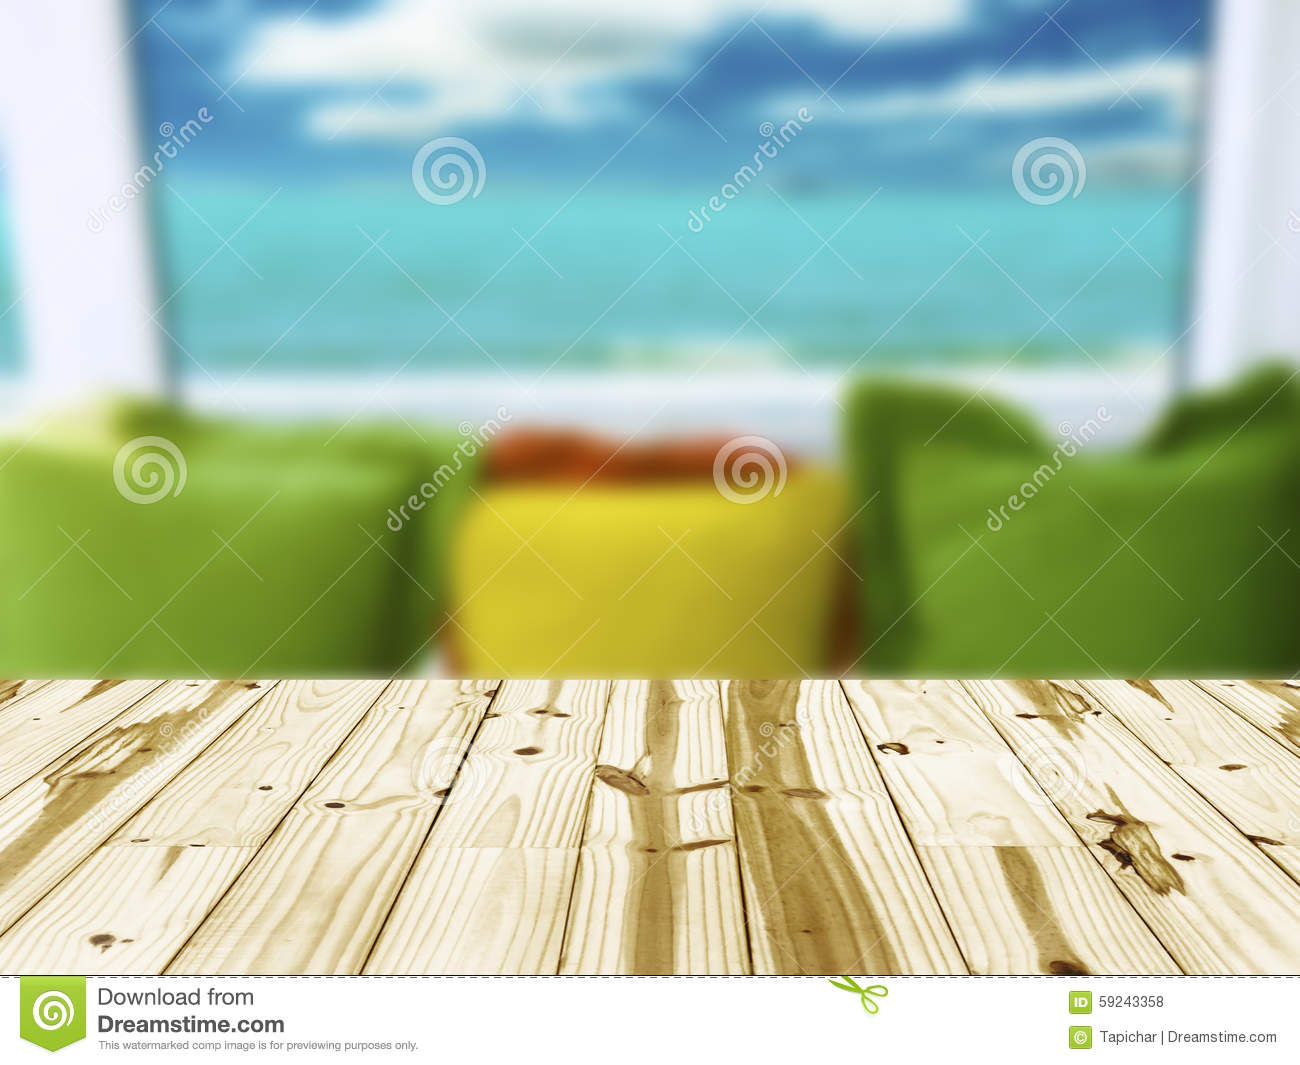 Empty wood table and blurred living room background stock photo - Wood Table Top On Interior Living Room Blurred Background Royalty Free Stock Photos